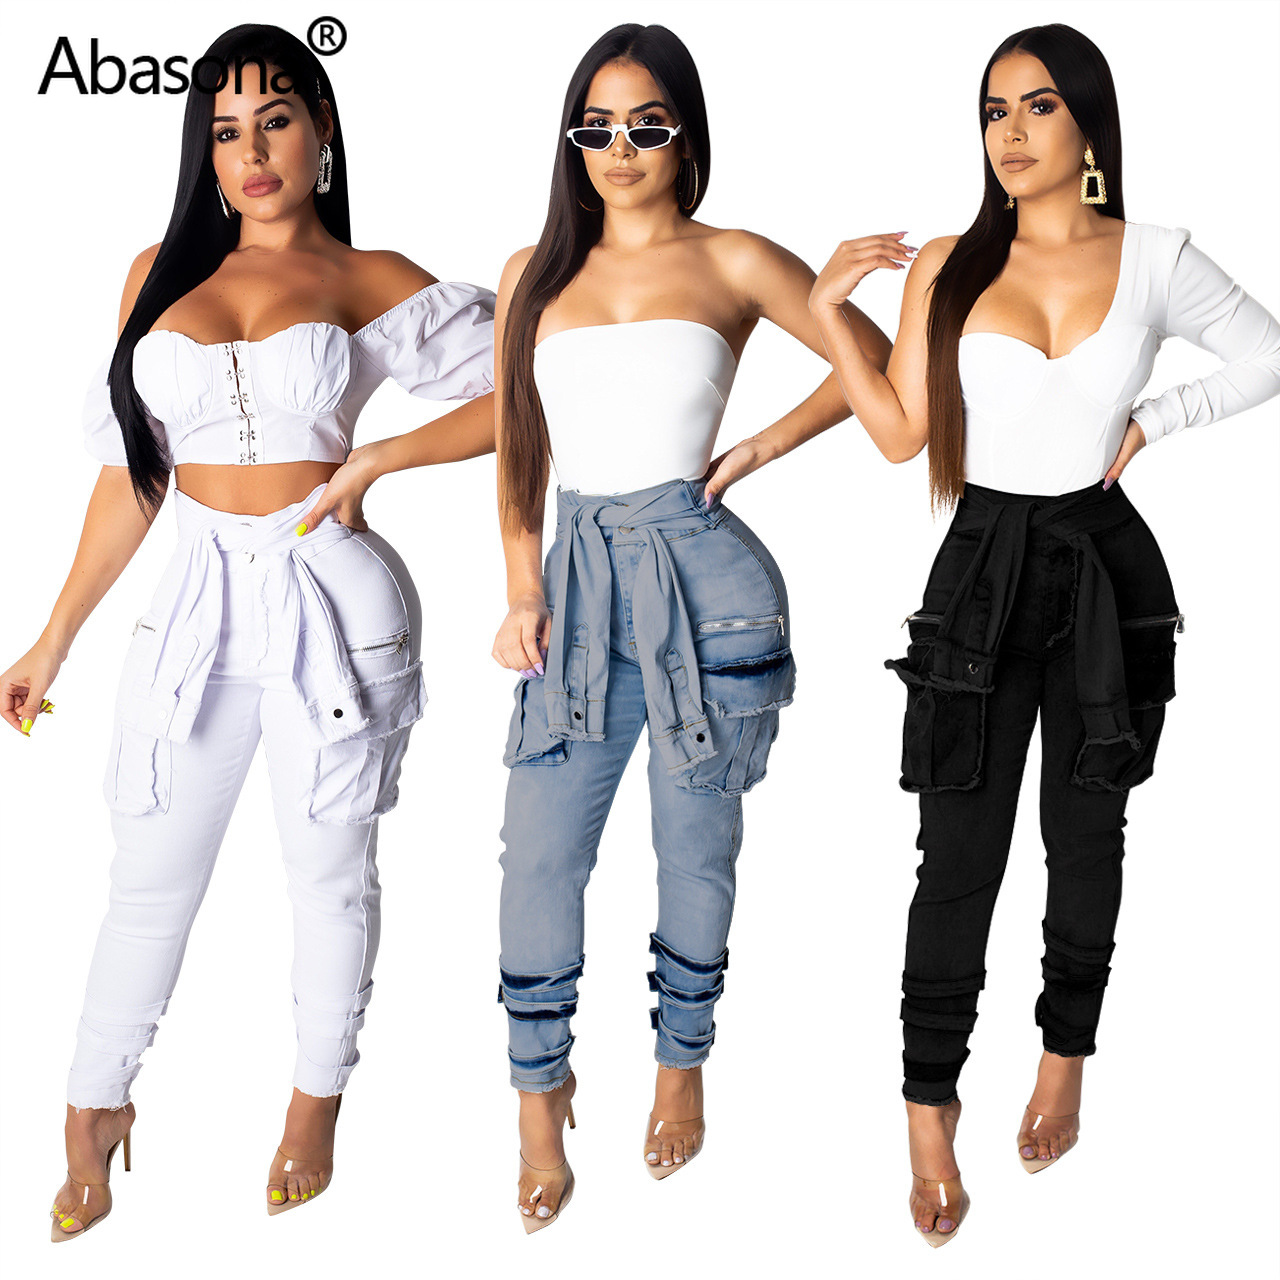 2019 Women Summer Tie Up High Waist Side Pocket Pencil Long   Jeans   Vintage Fashion Denim Sexy Club Pants Safari Trousers S-2XL